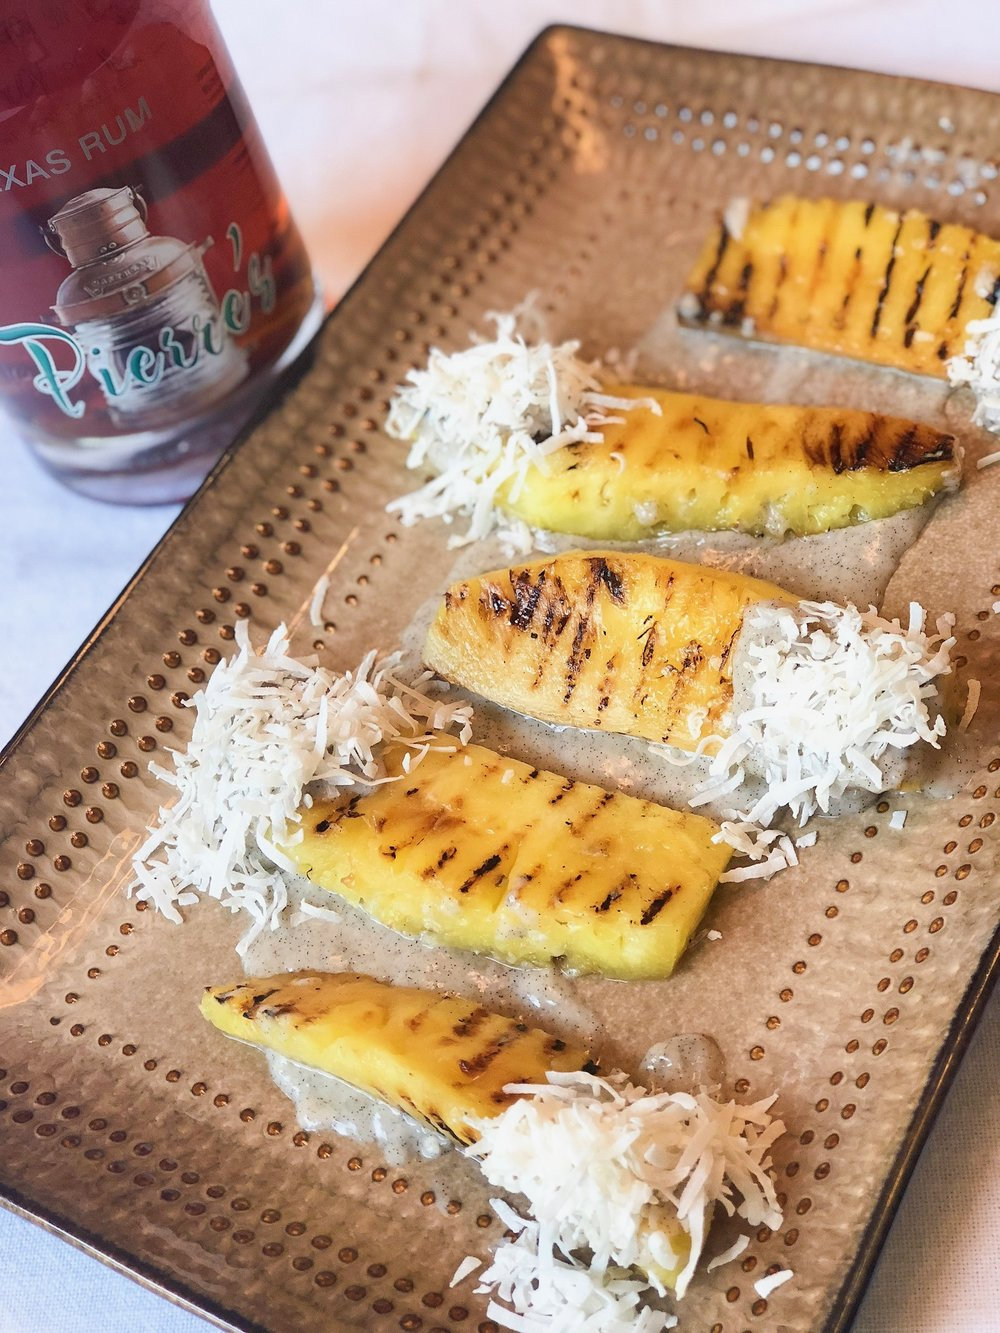 Grilled Pineapple w/ Coconut Rum Sauce